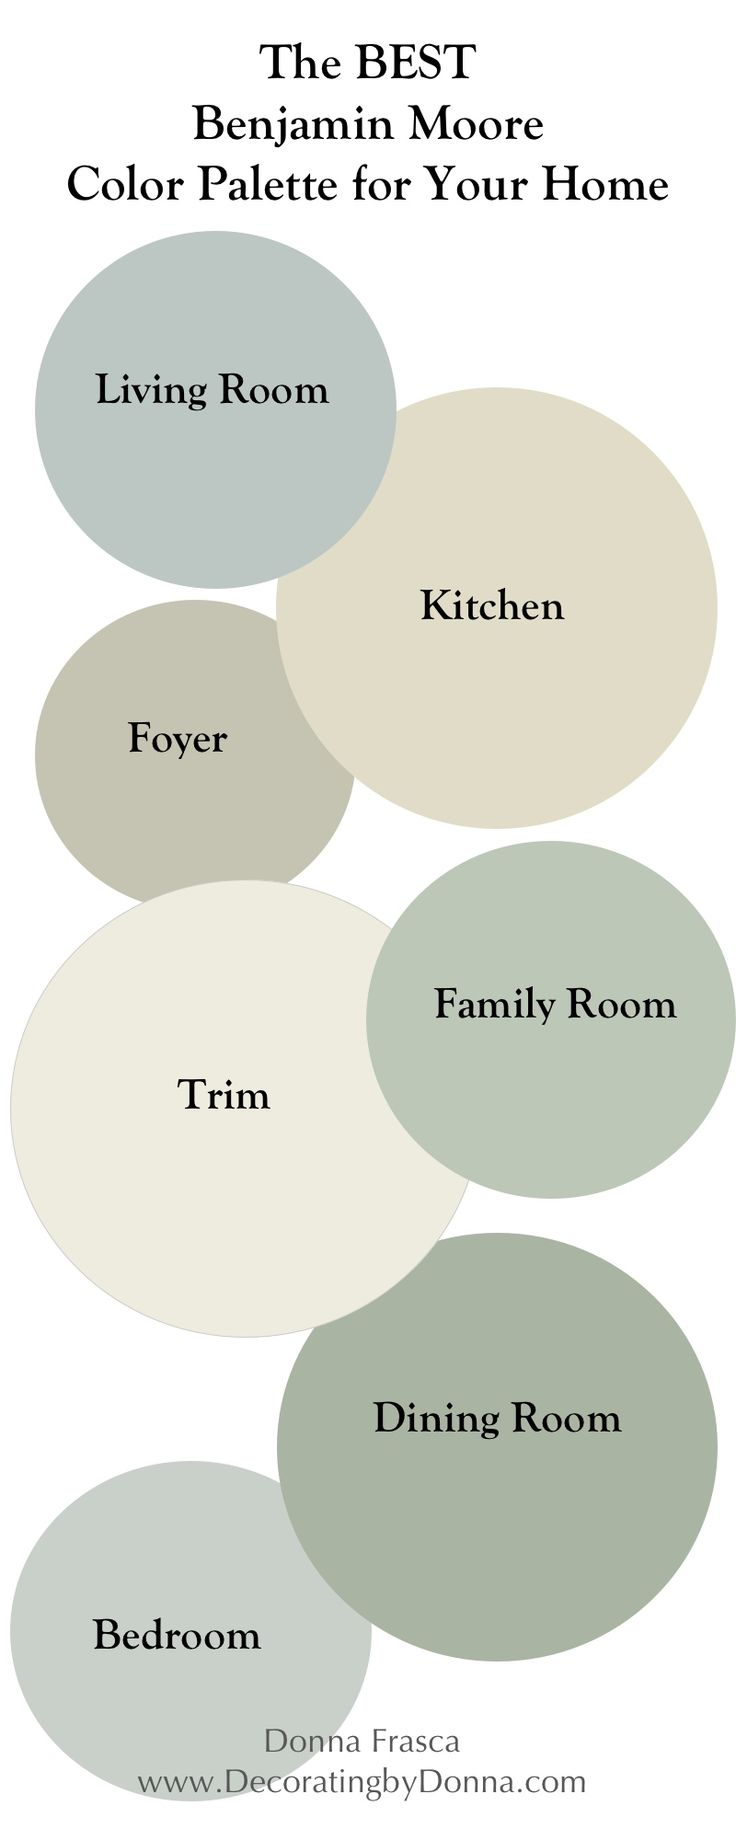 The Best Benjamin Moore Coastal Color Palette For Your Home UPDATED!